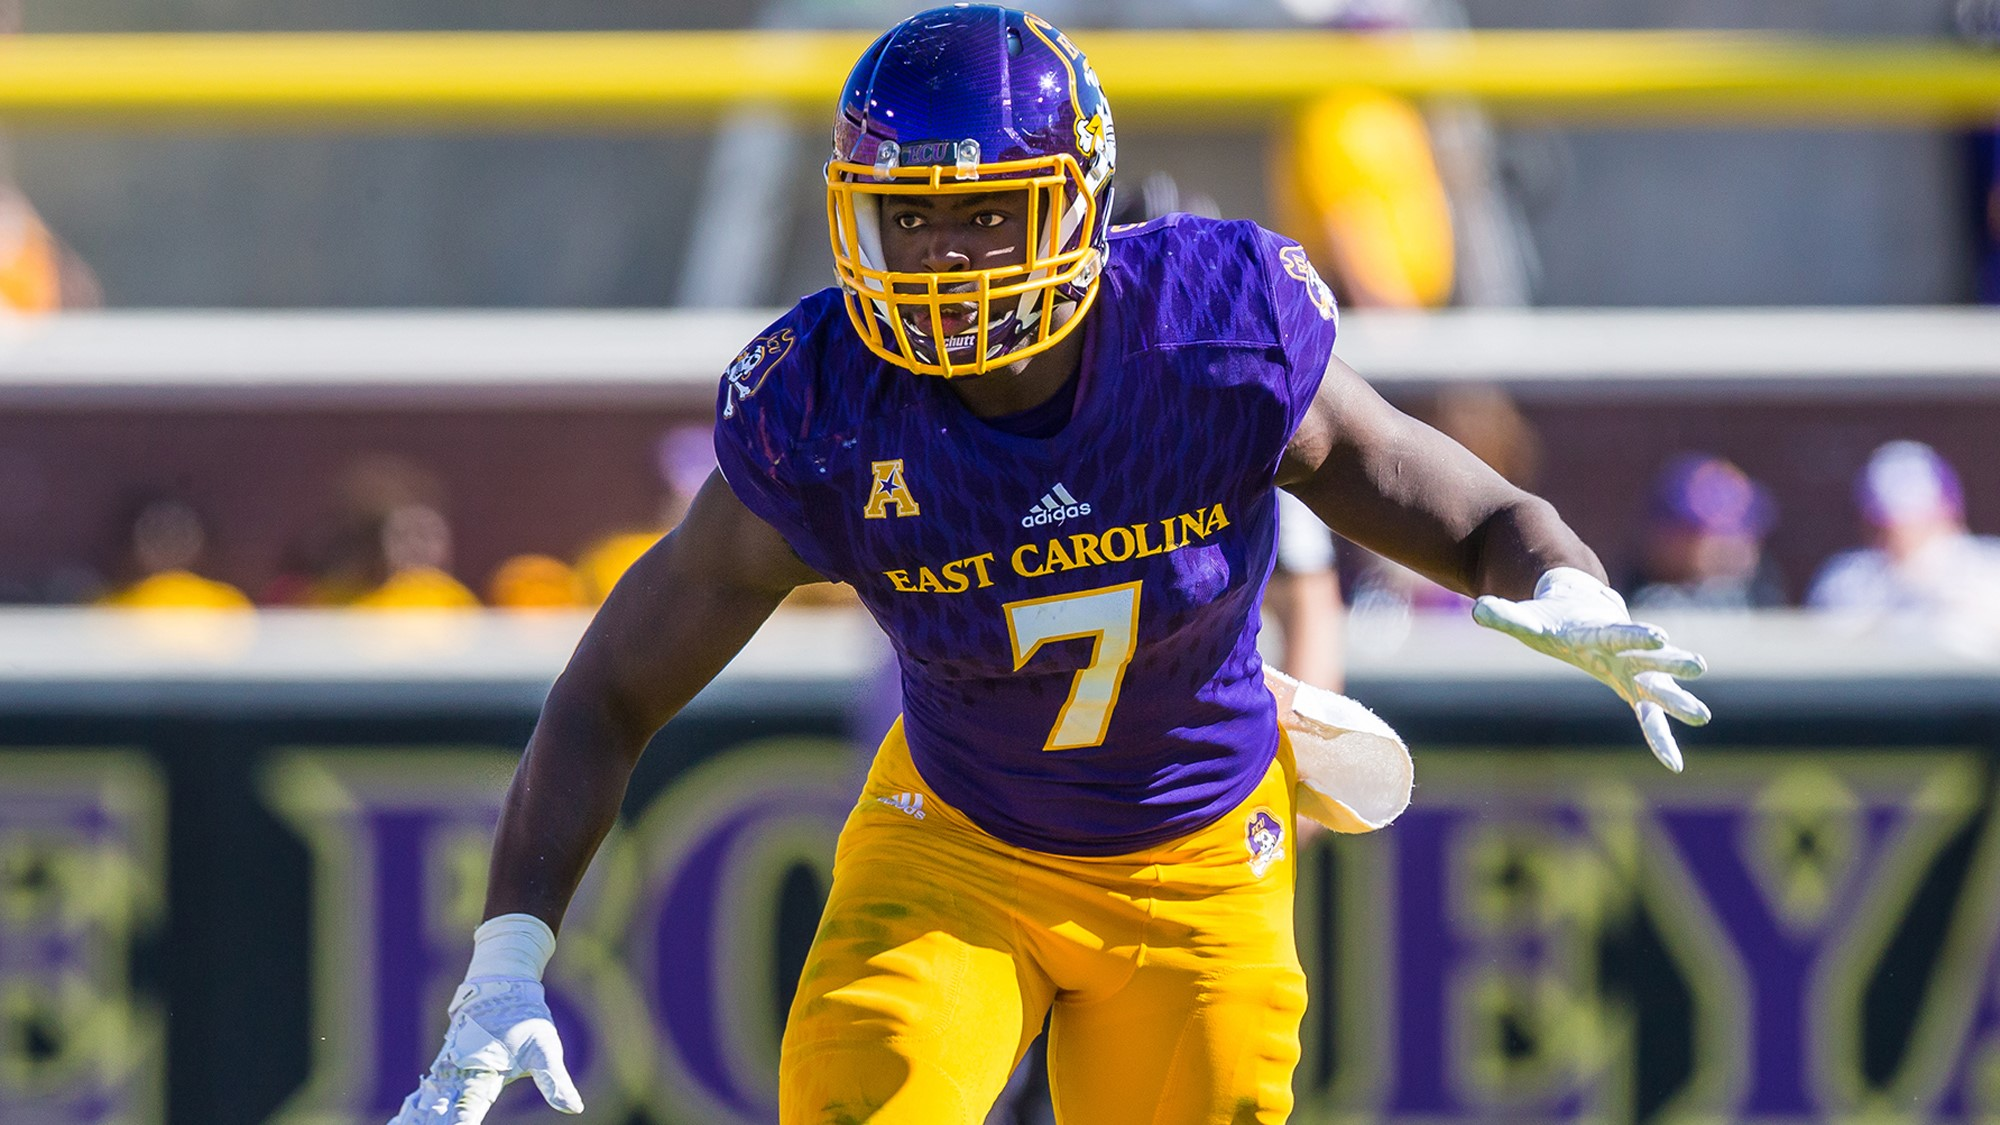 uk availability 322b4 15983 Gameday: ECU Hosts JMU In Season Opener - East Carolina ...